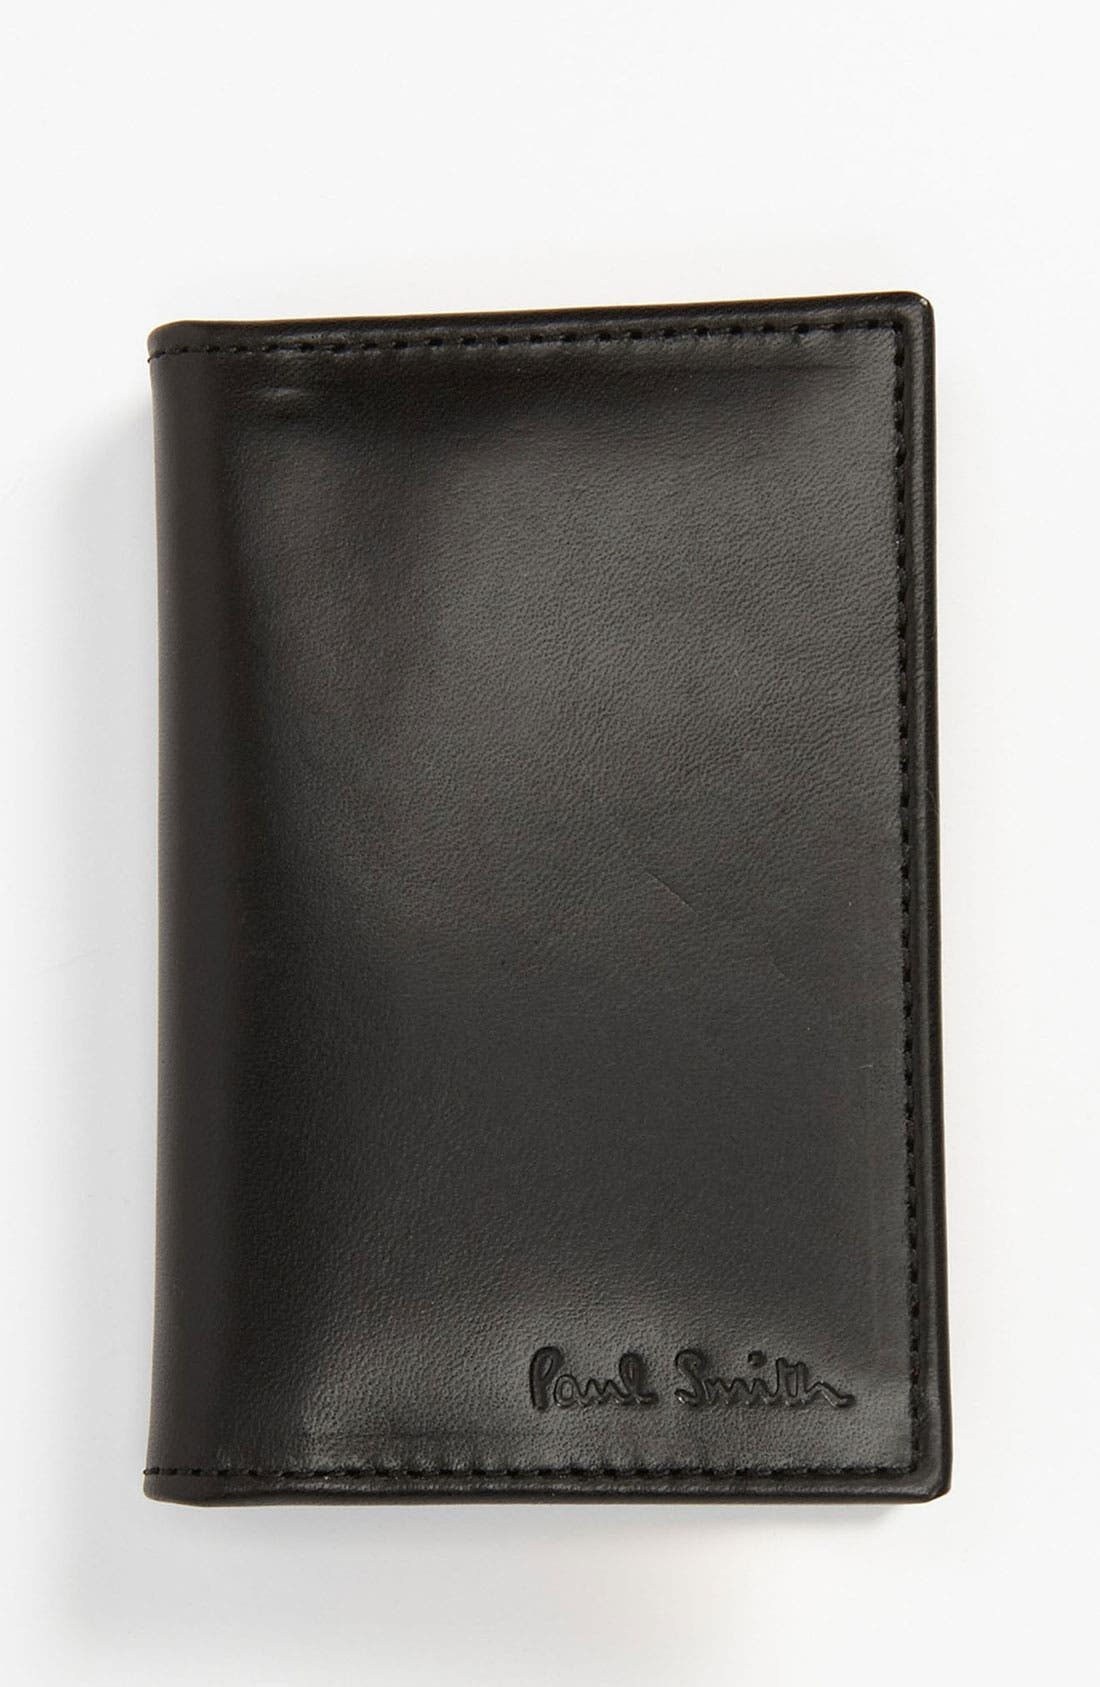 Main Image - Paul Smith Accessories Leather Wallet